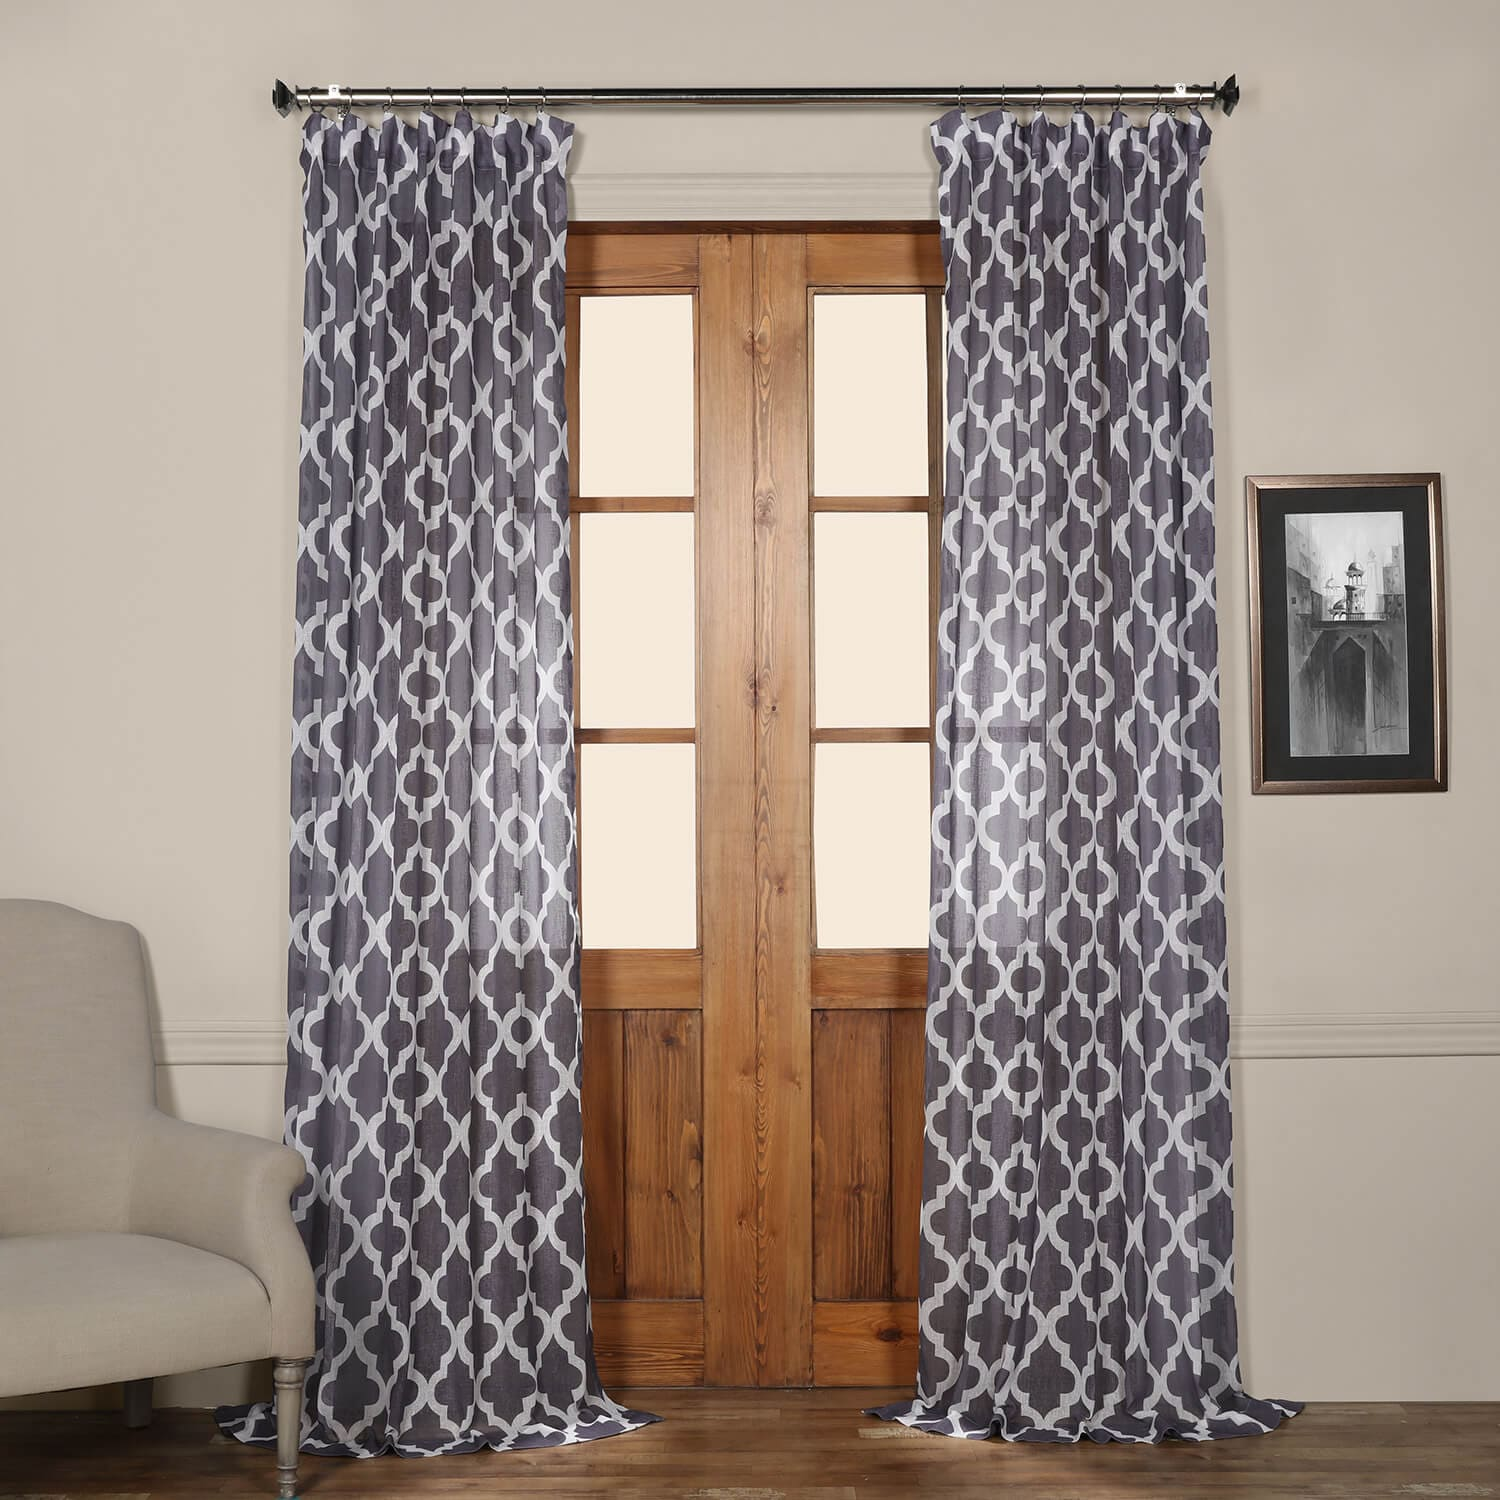 Birmingham Mulberry Printed Faux Linen Sheer Curtain